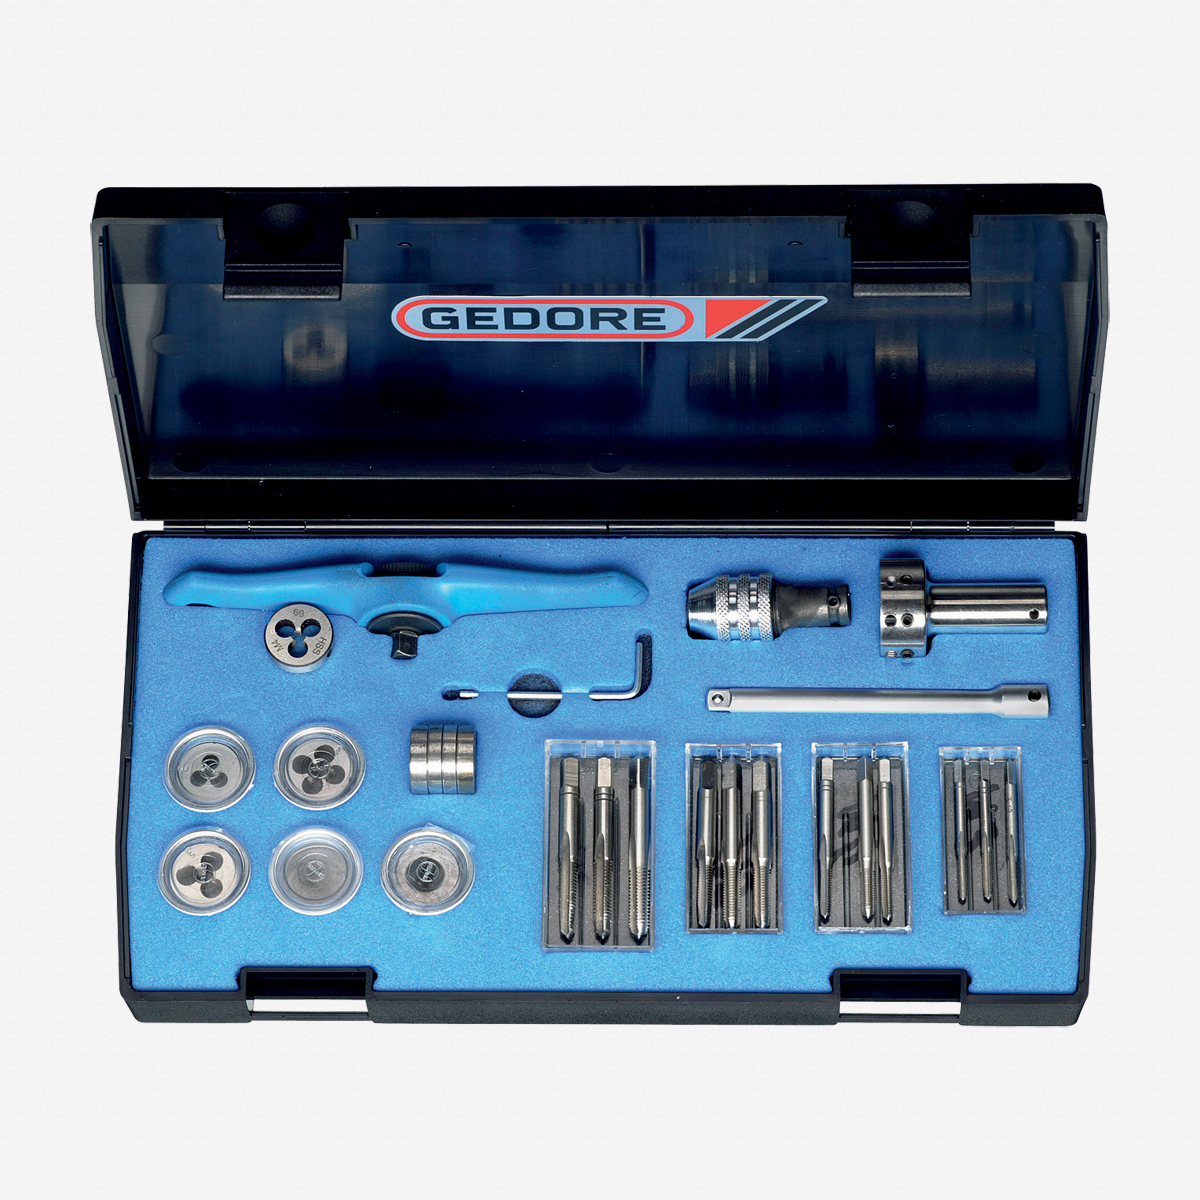 Gedore 8553 Tap and die set M3-M6 - KC Tool